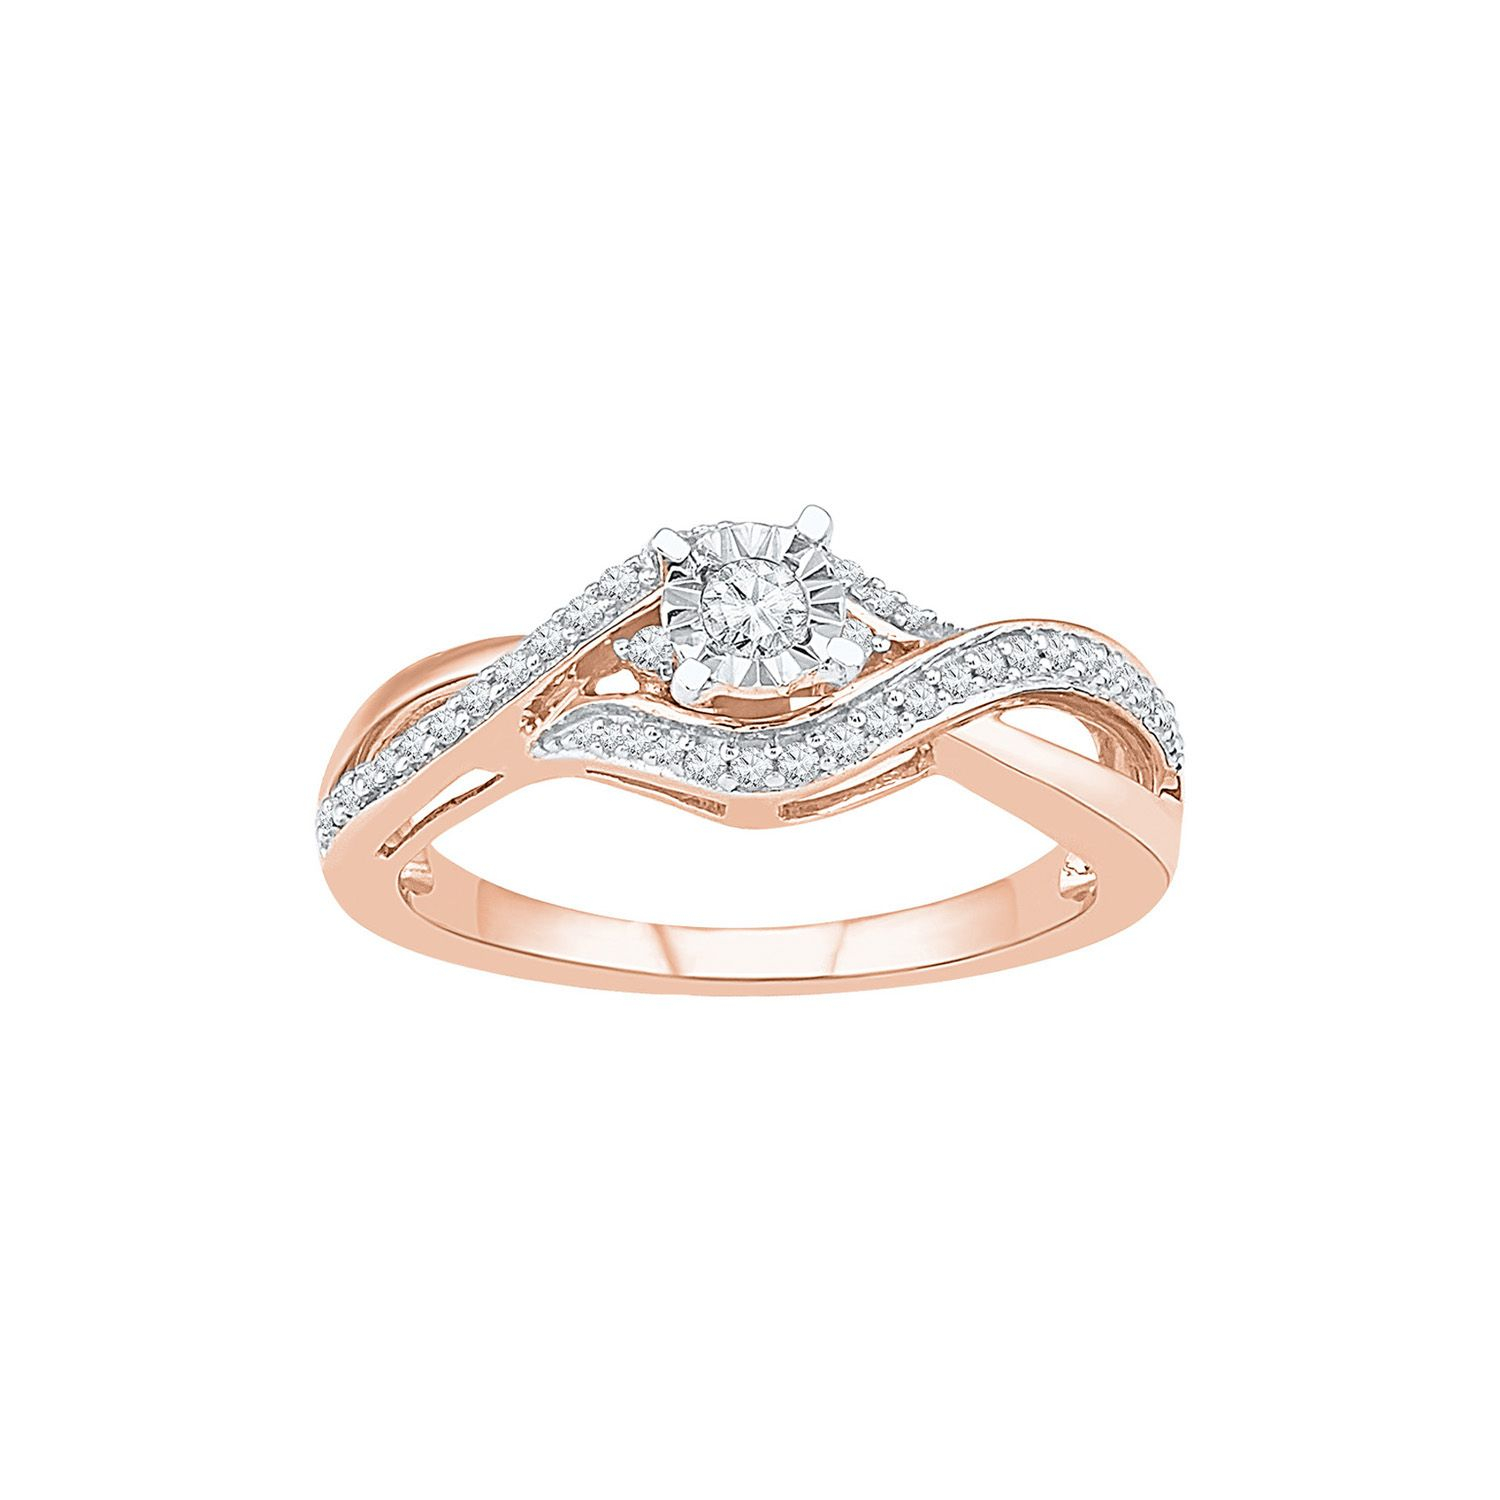 1 4 Ct Tw Diamond Promise Ring In 10k Rose Gold Engagement Ring White Gold